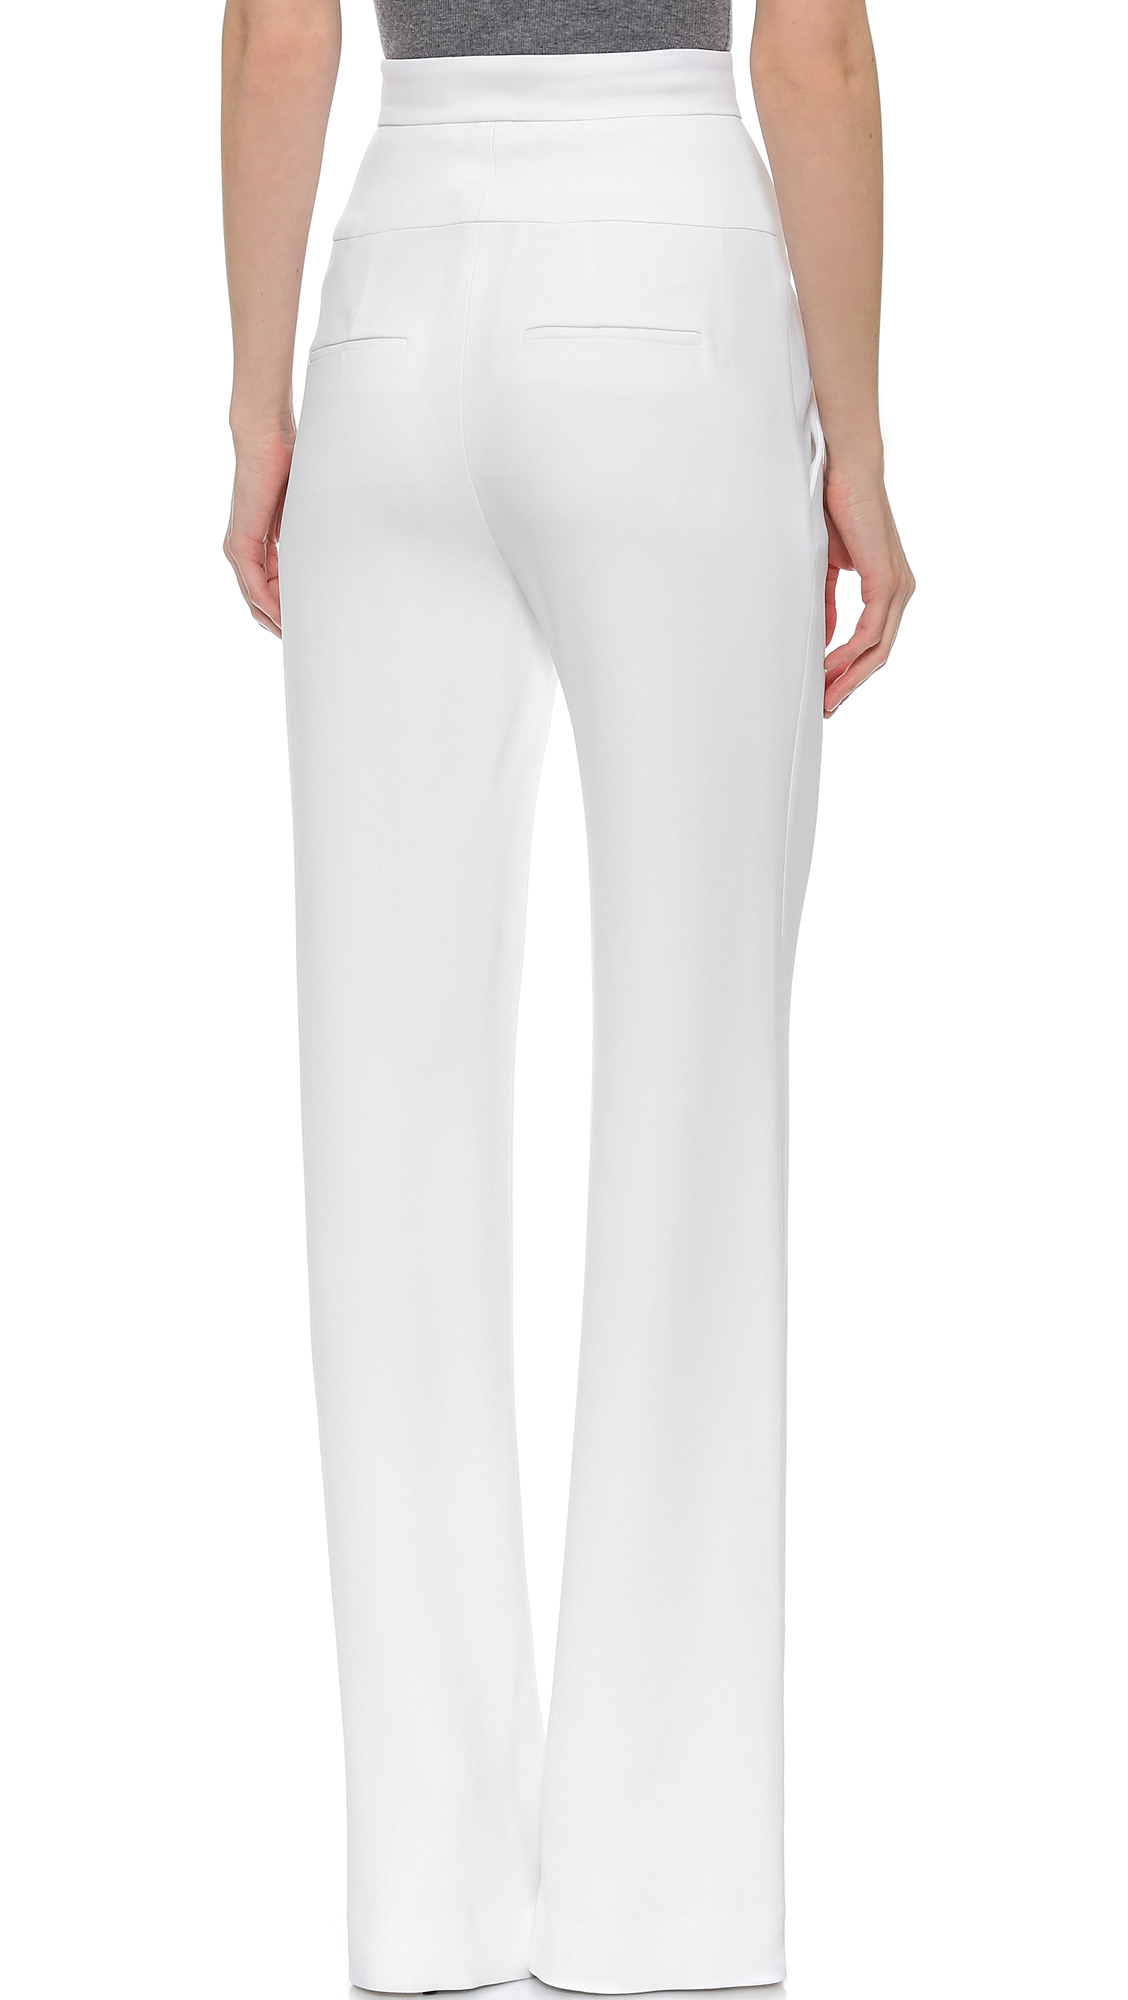 2018 Cheap Sale High Waisted Cropped Flare Pants Cushnie et Ochs Clearance Fashion Style Outlet Best Store To Get Fast Delivery Cheap Price Best Place Cheap Online 58q6pw